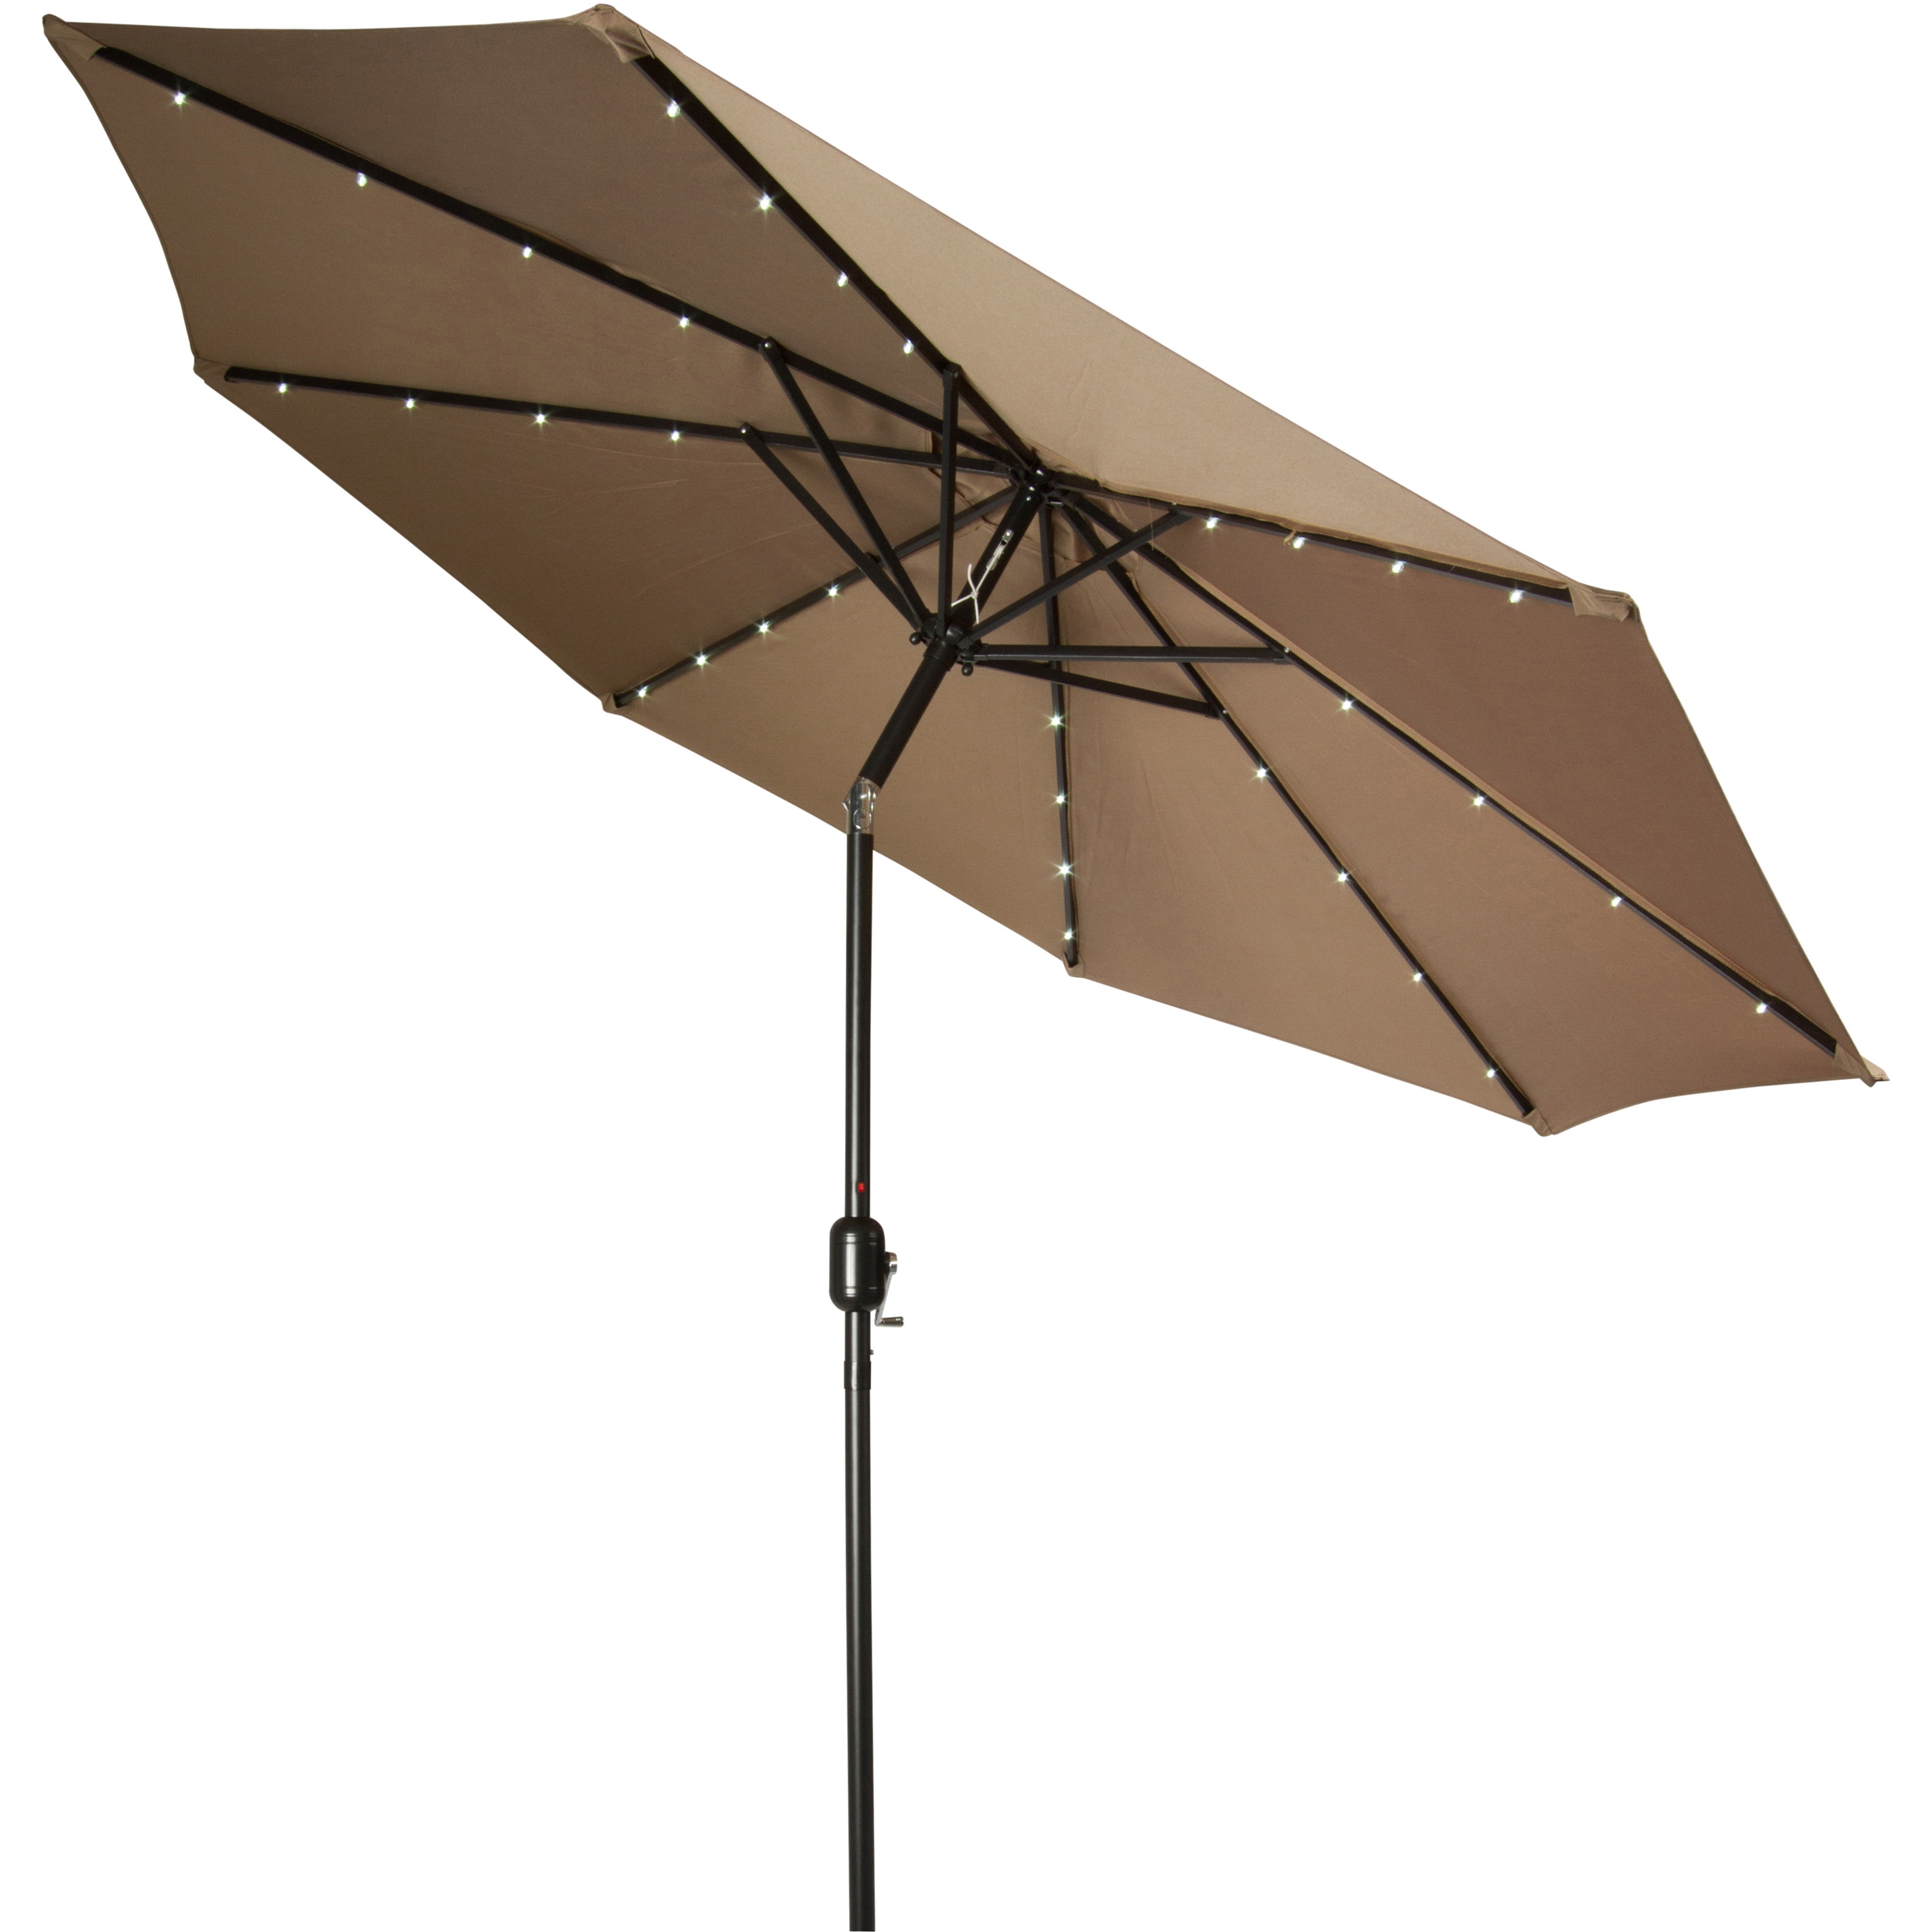 Tan 9 foot Deluxe Solar Powered LED Lighted Patio Umbrella by